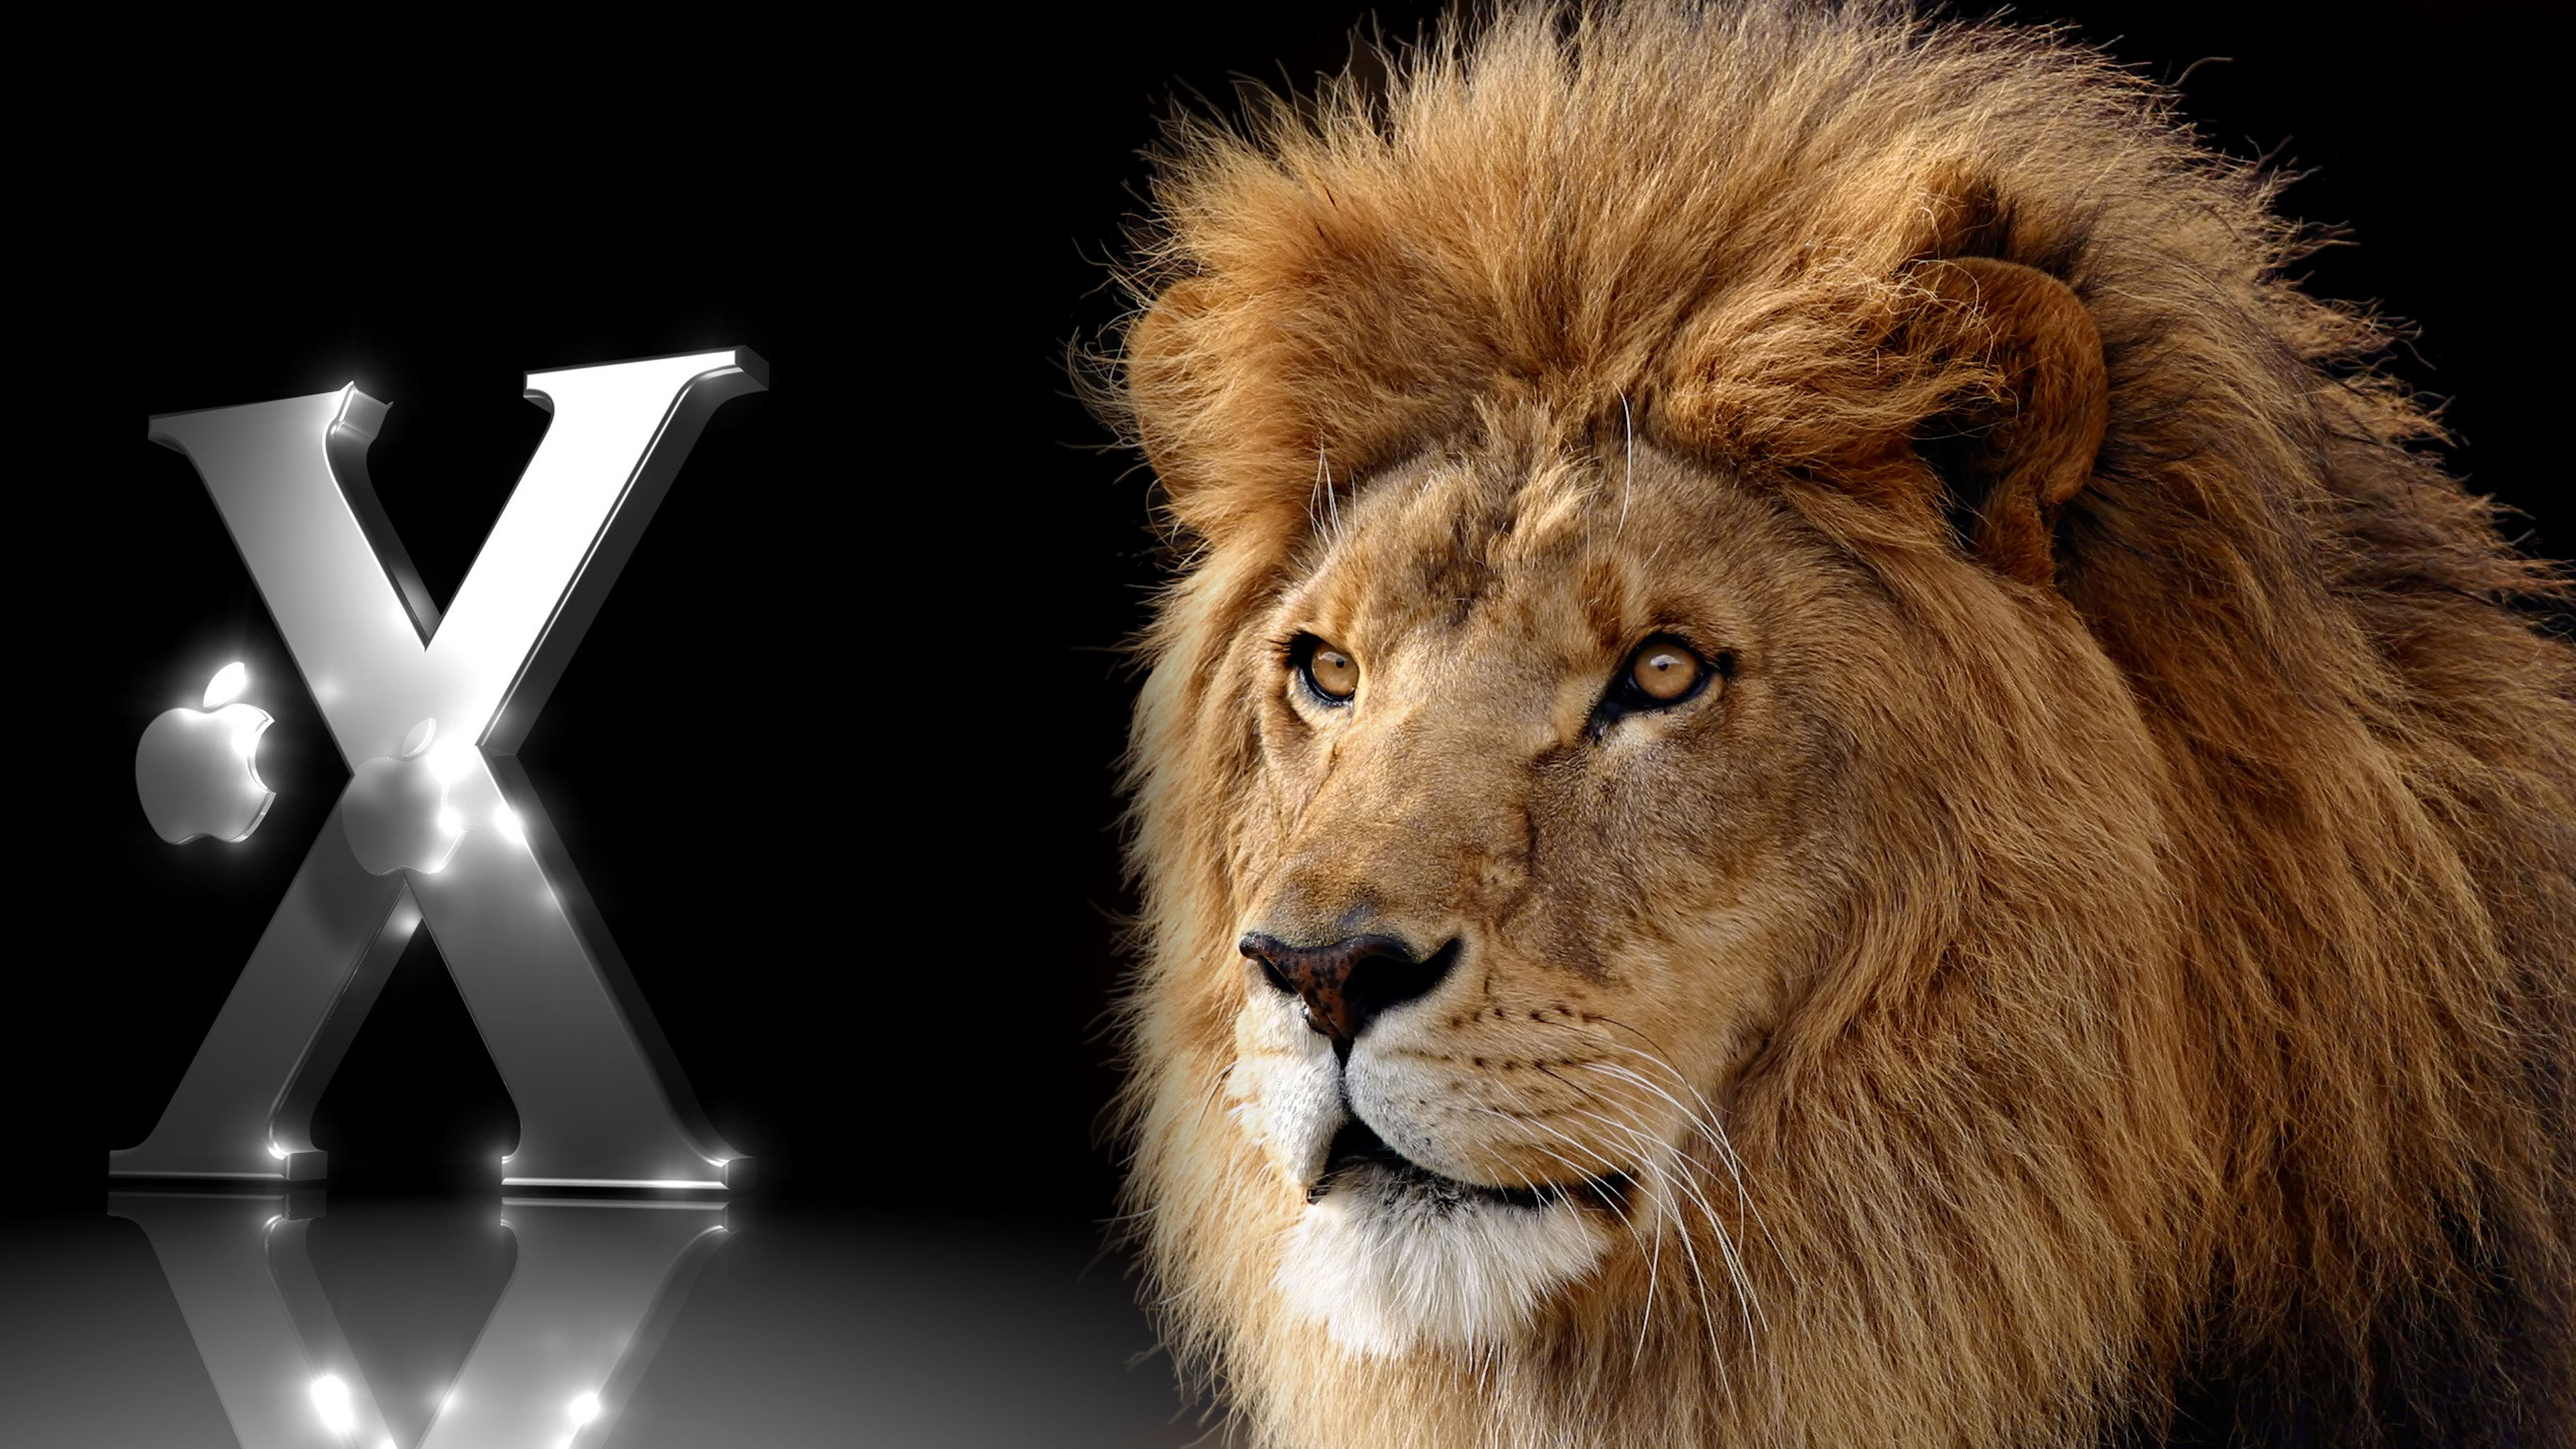 apples lion release of mac os x wallpaper click picture for high resolution hd wallpaper